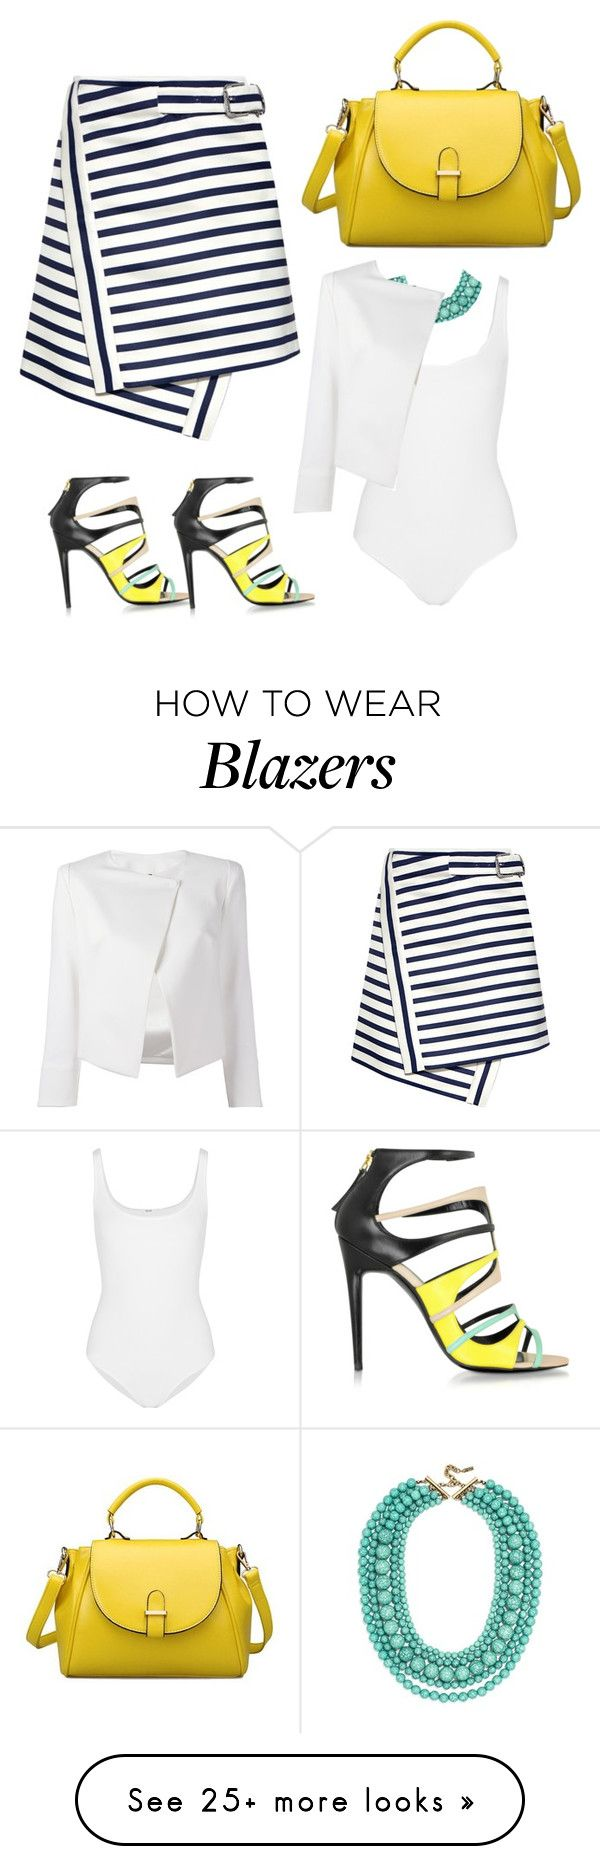 """""""yellow"""" by loversin on Polyvore featuring Carven, Pierre Hardy, Wolford, BaubleBar and Plein Sud Jeanius"""